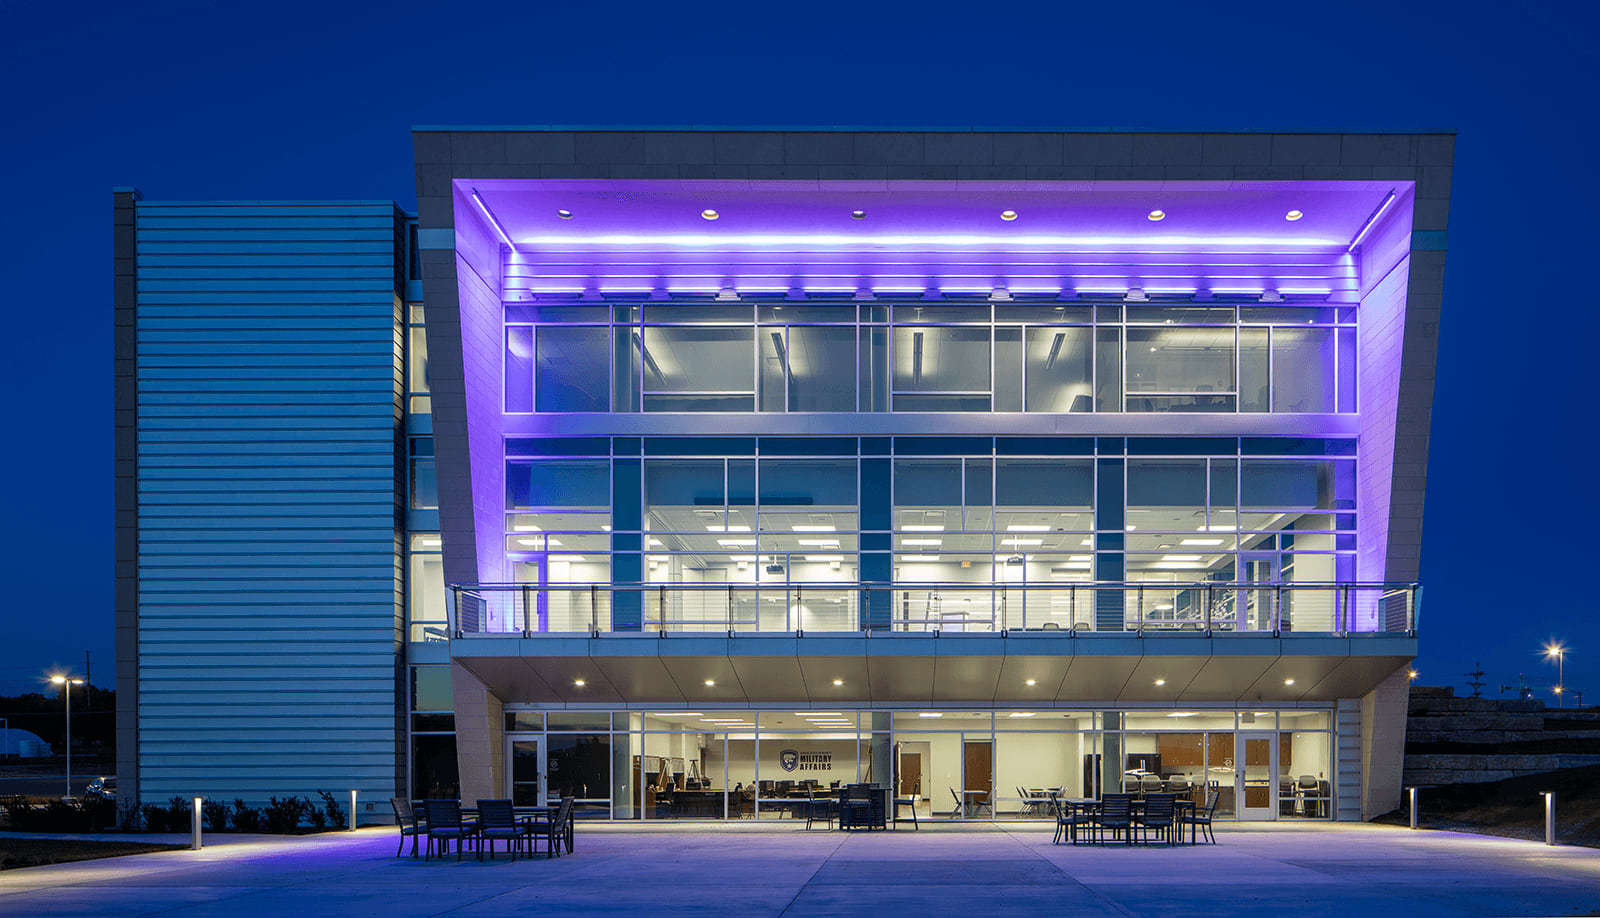 K-State Front Night View